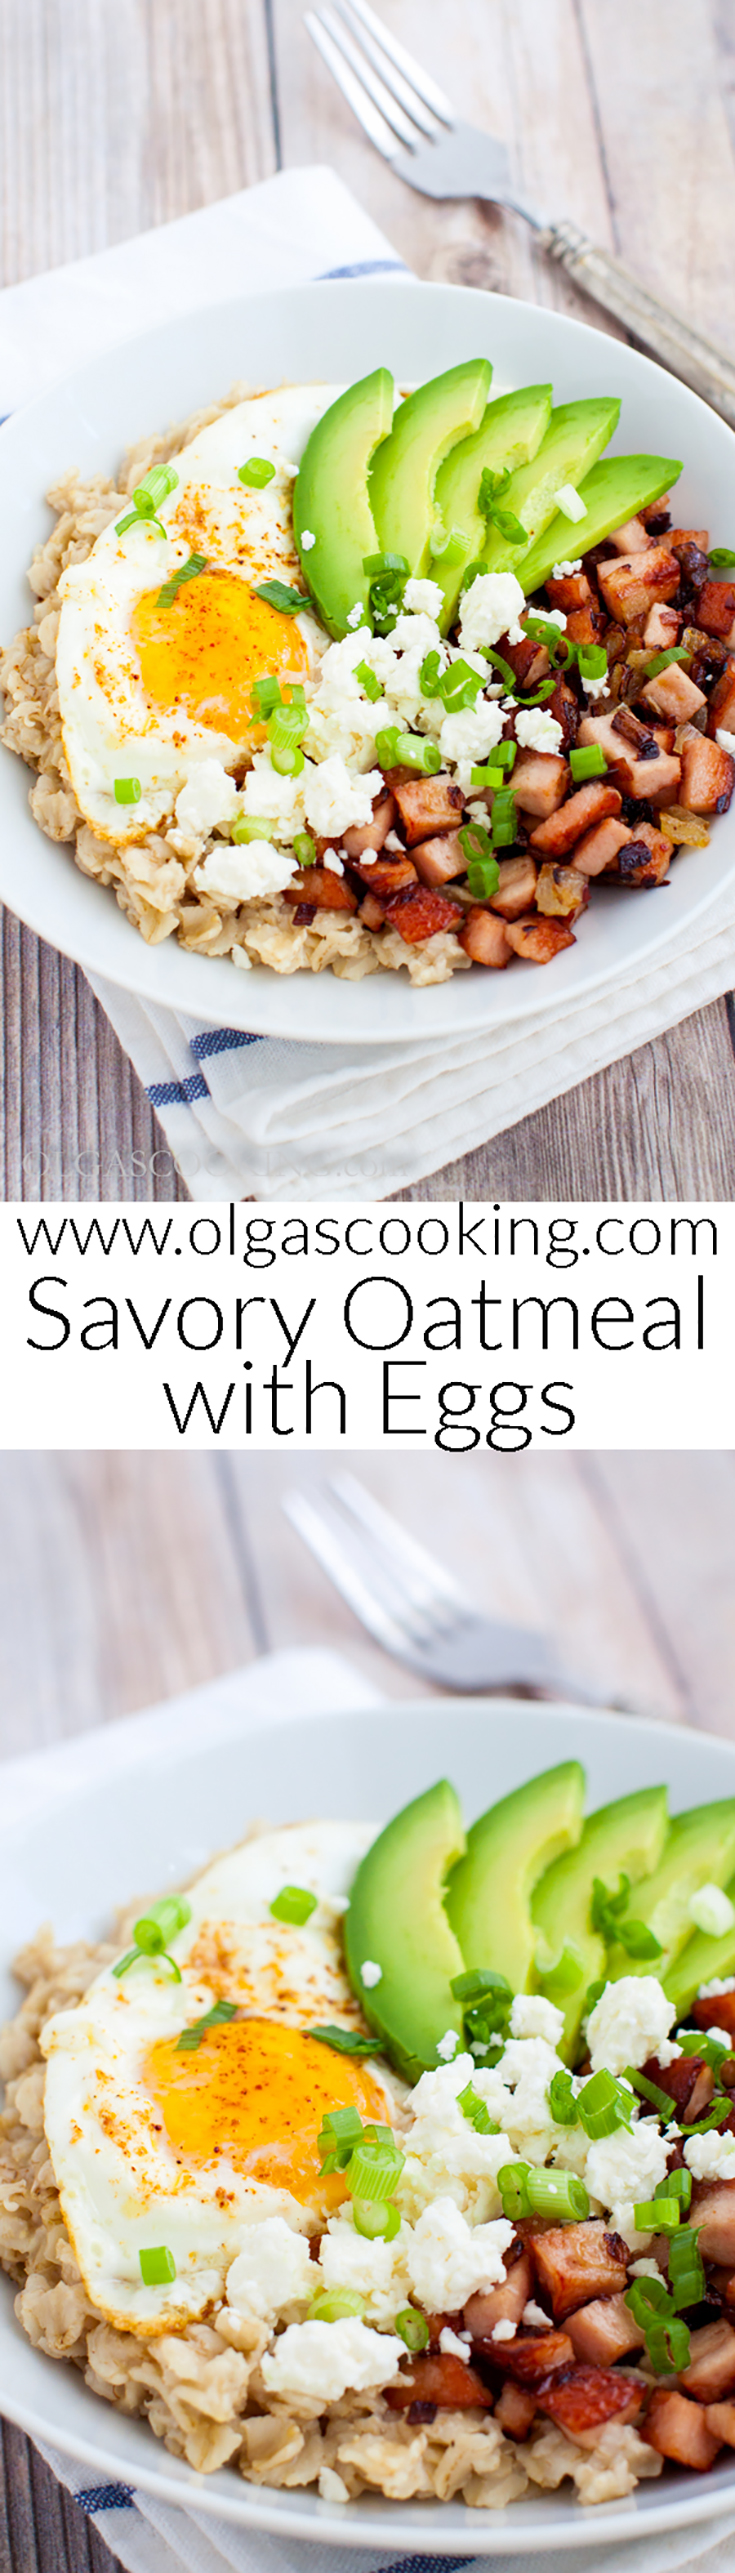 Savory Oatmeal with Eggs Recipe